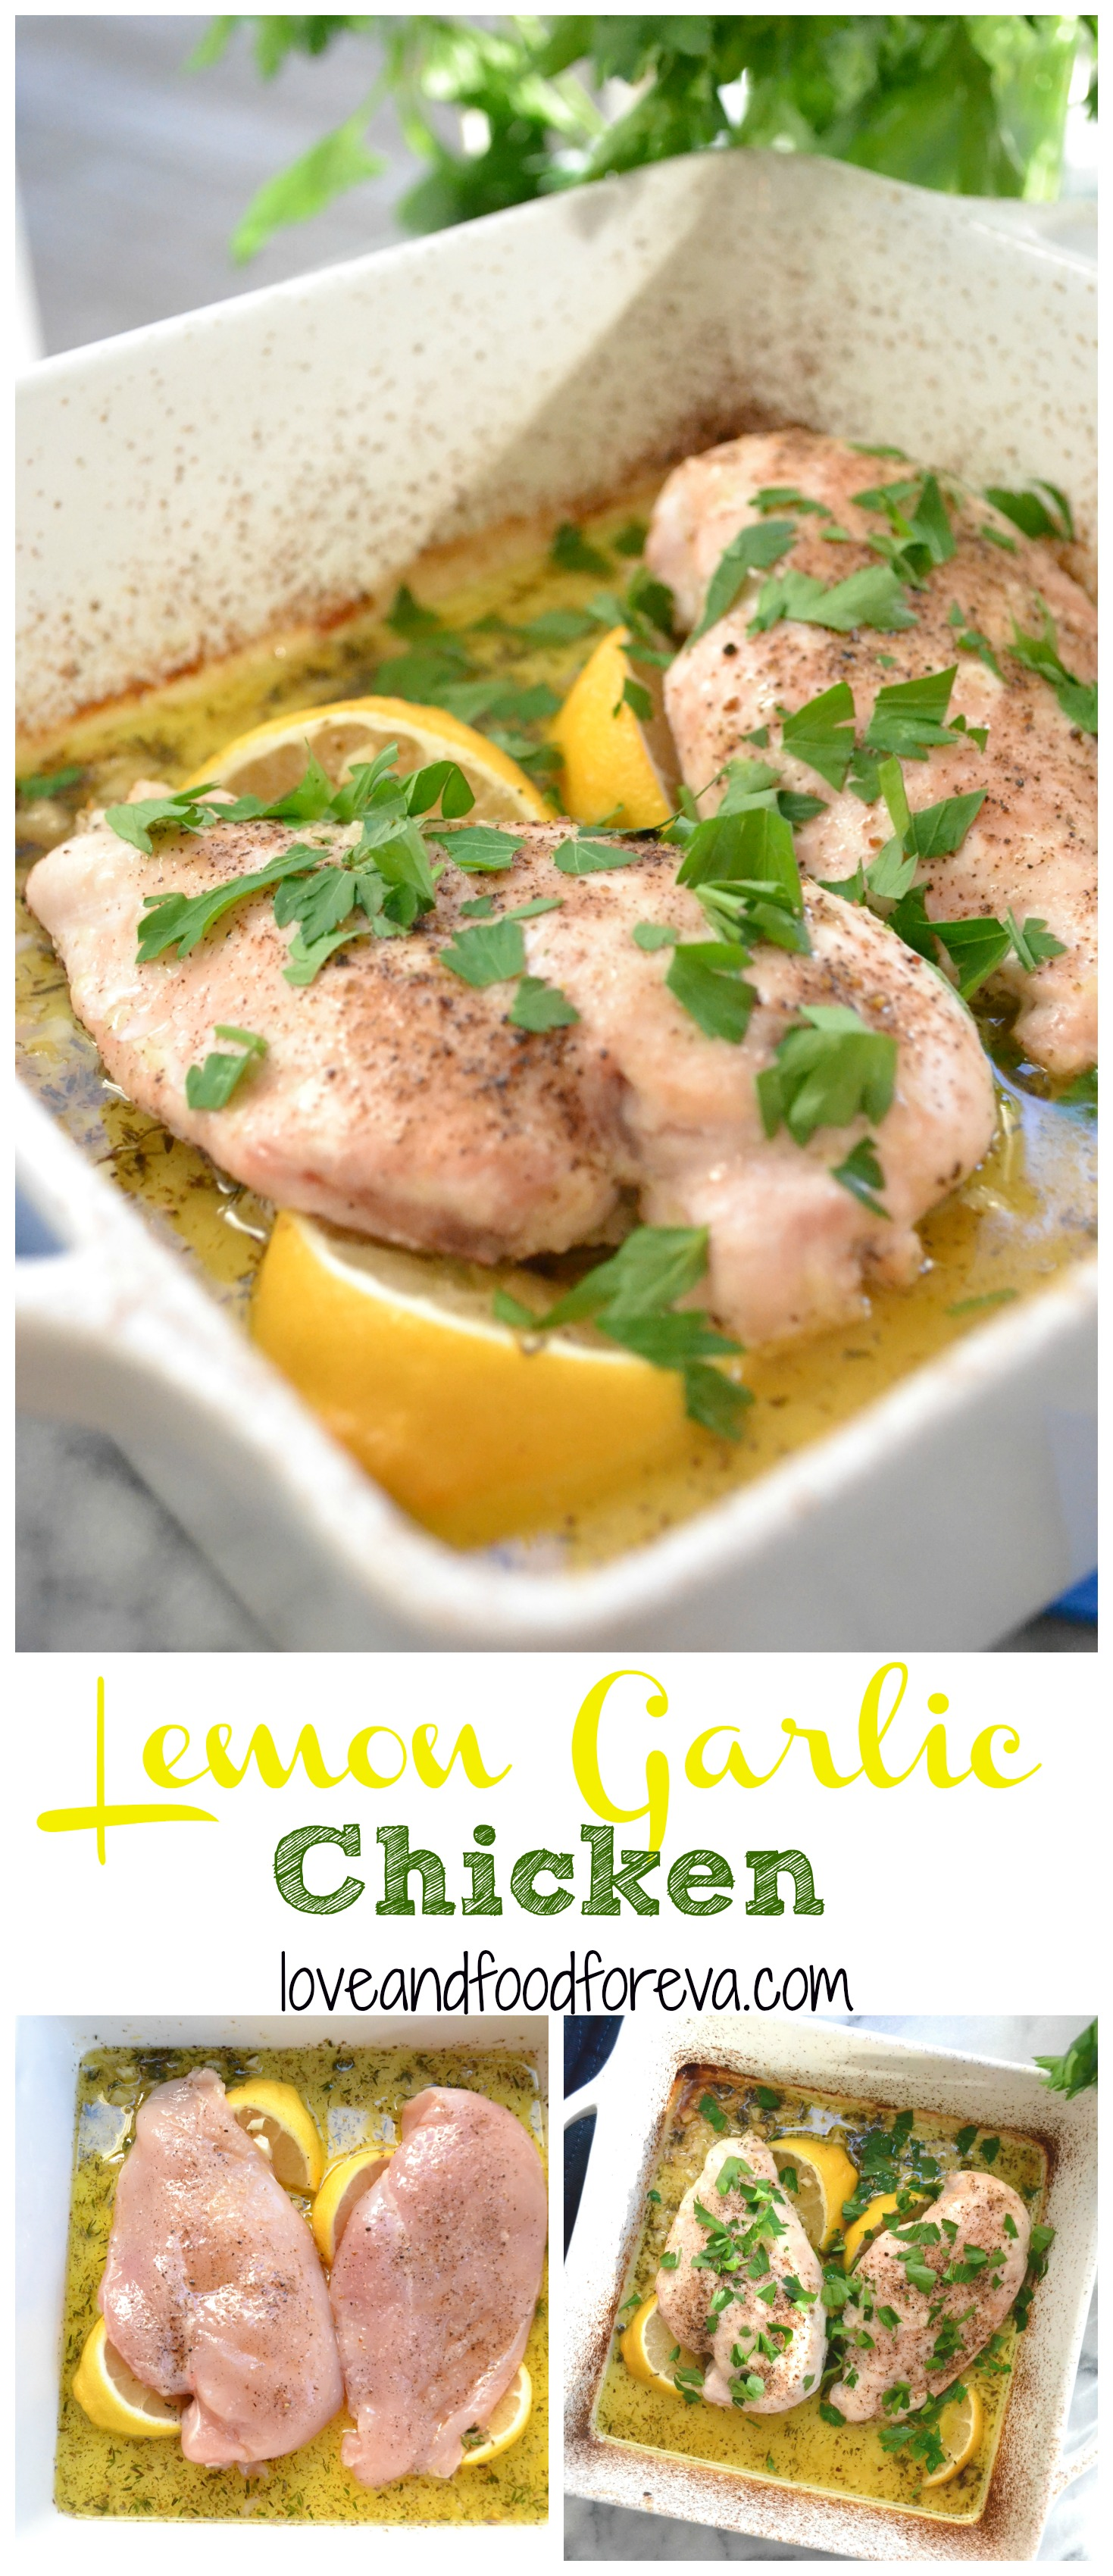 Lemon Garlic Chicken - a fresh, simple and quick dinner your whole family will love!